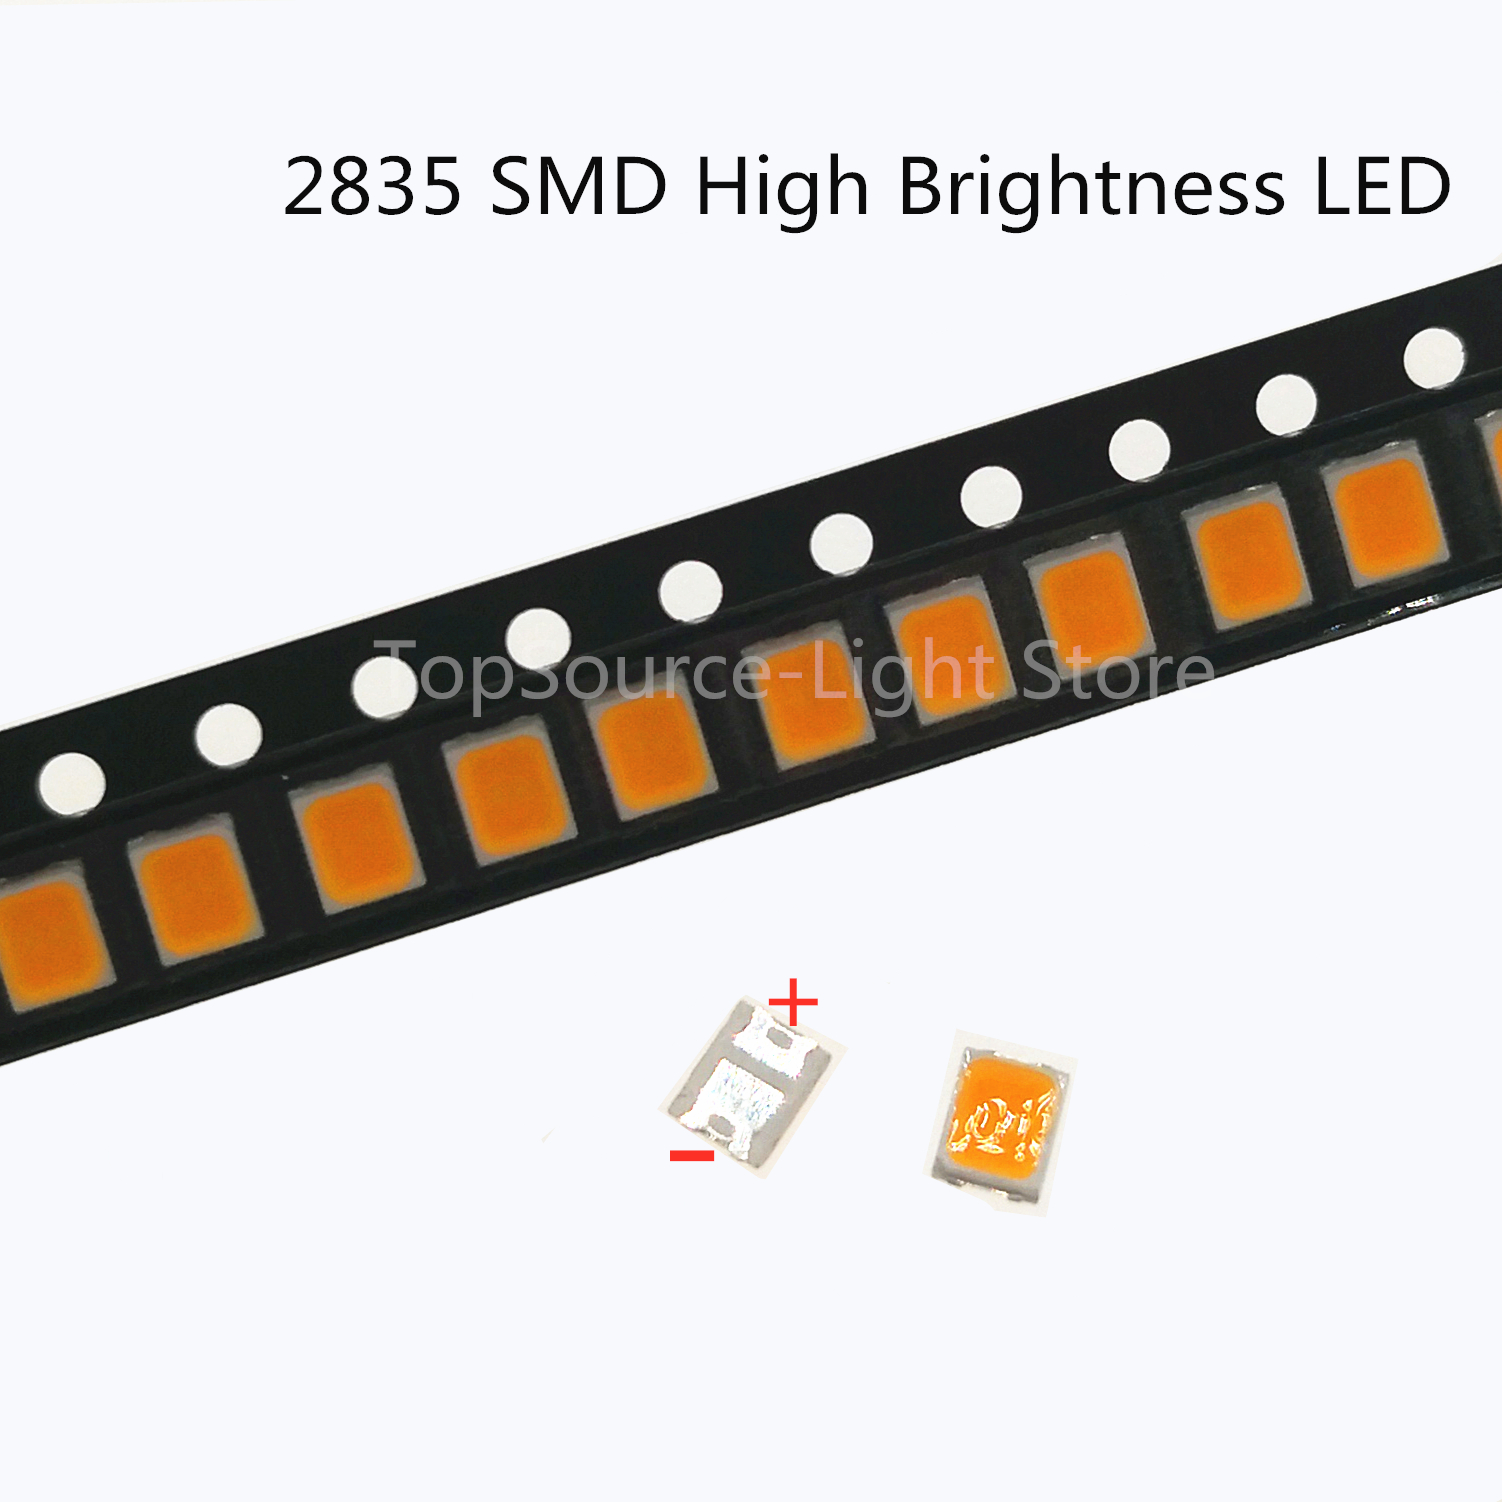 Original 100pcs High Brightness 2835 SMD LED Chip 1W 18V  9V 6V 3V White LED